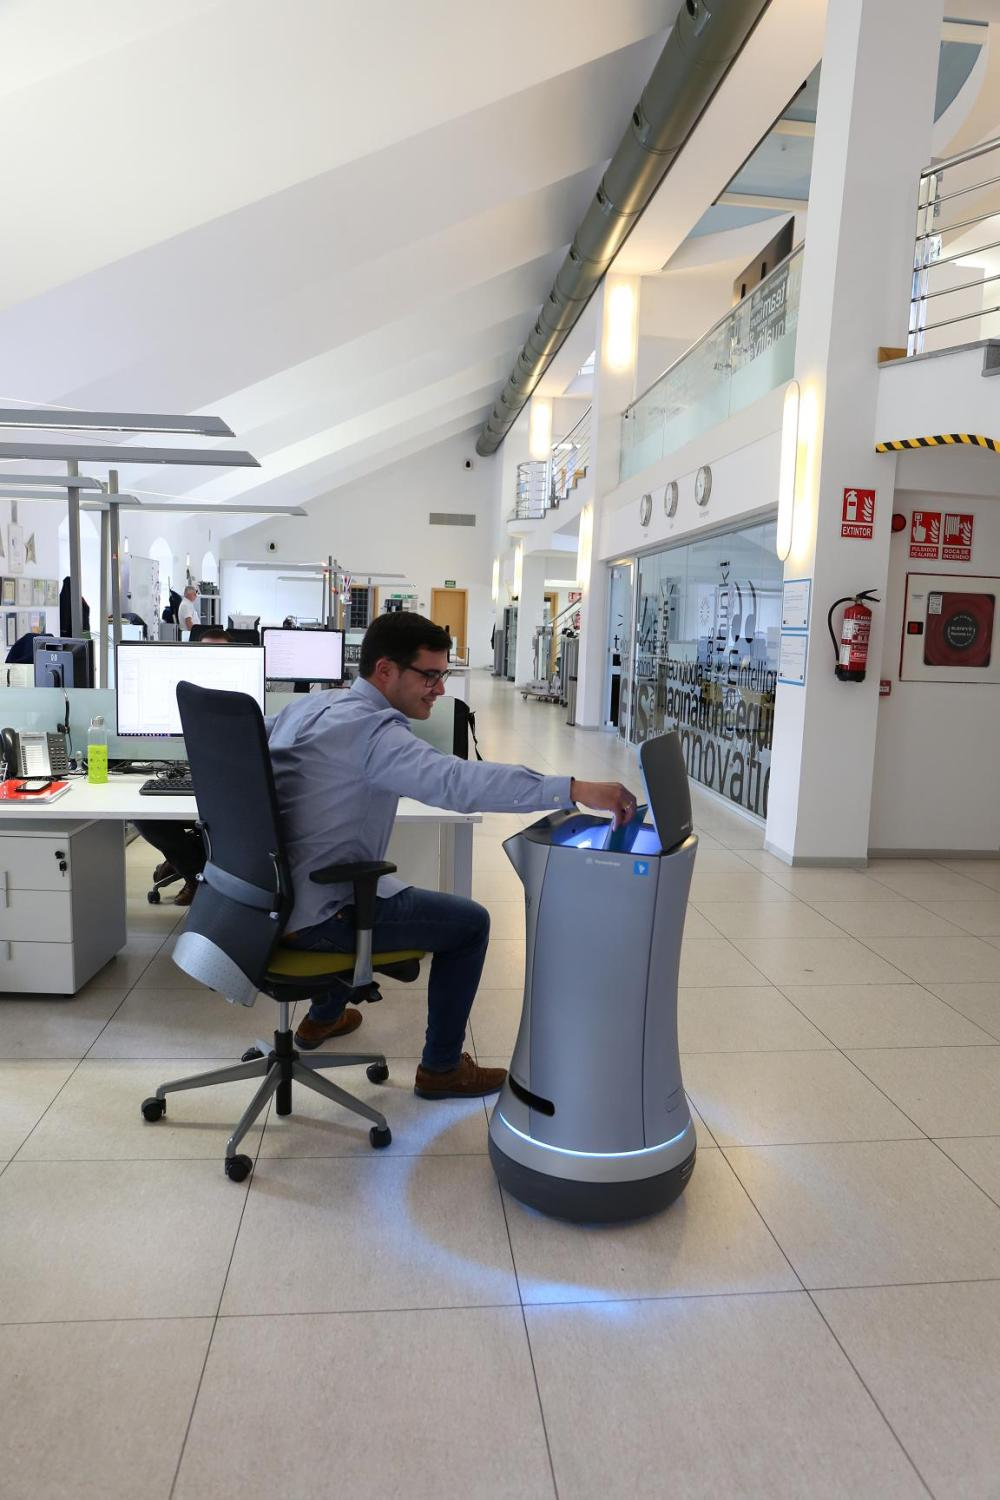 5 Robot delivering document to employee